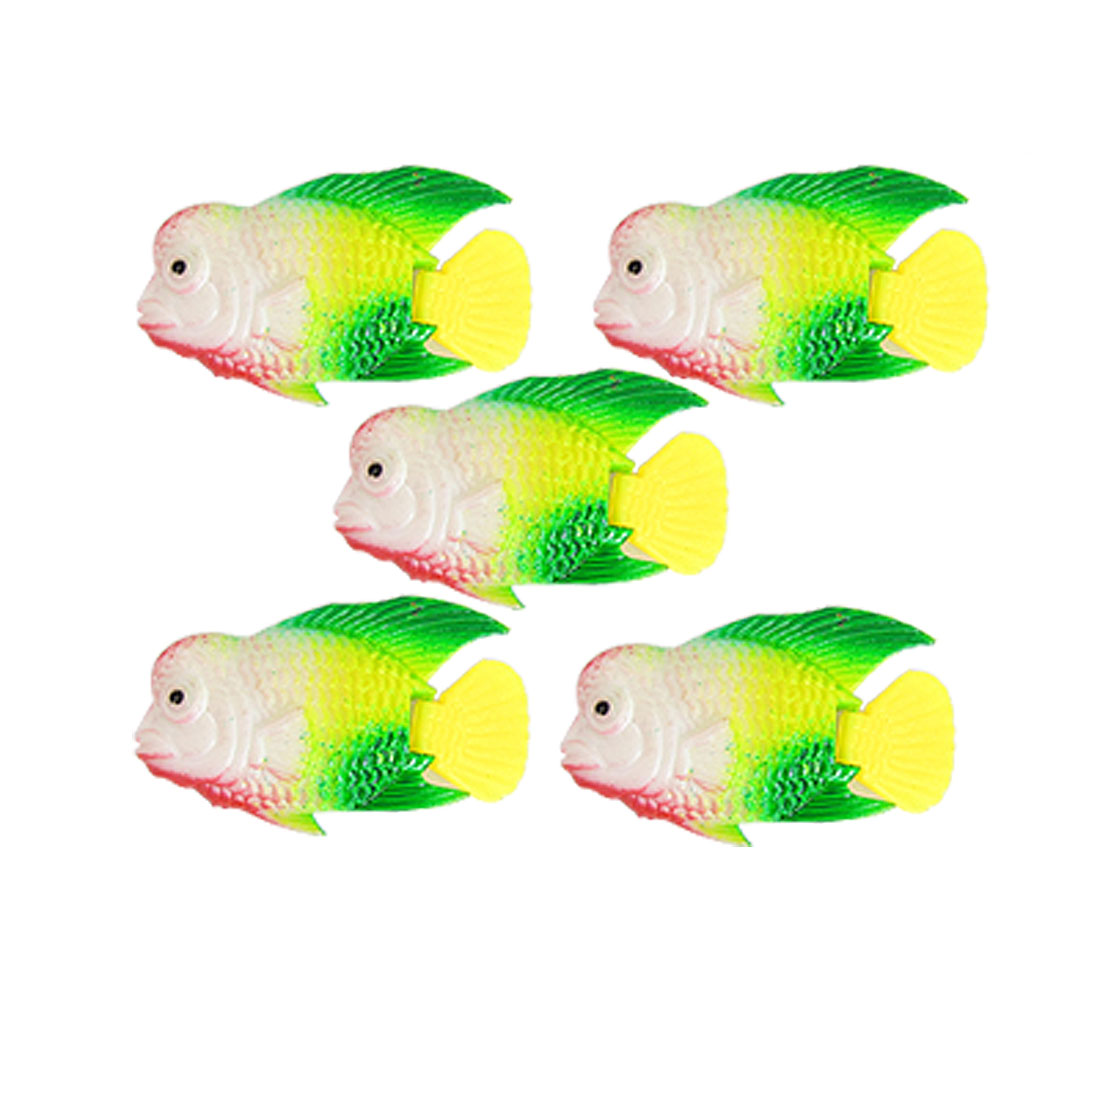 Floating Plastic Fish Decor 5pcs for Aquarium Tank